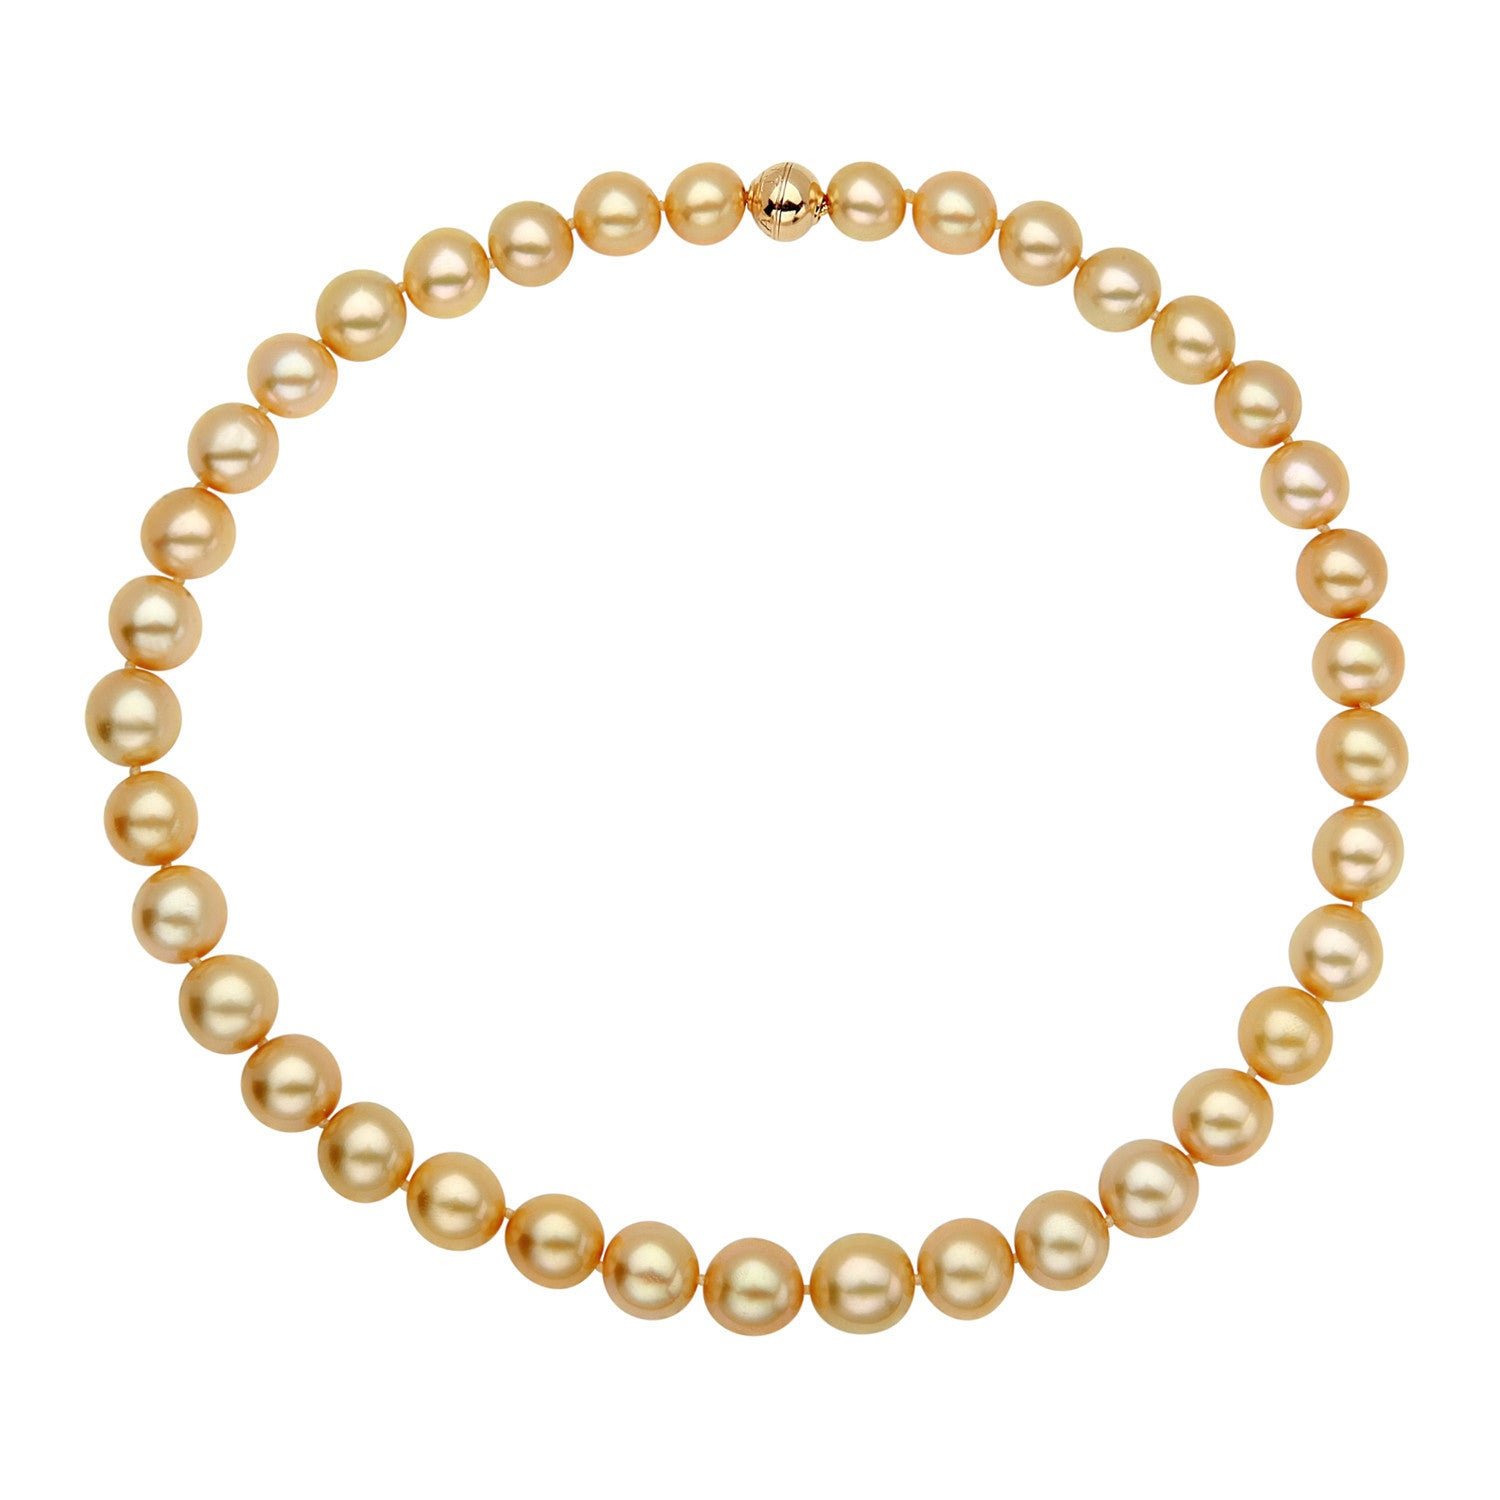 10-11mm Golden South Sea Pearl Strand